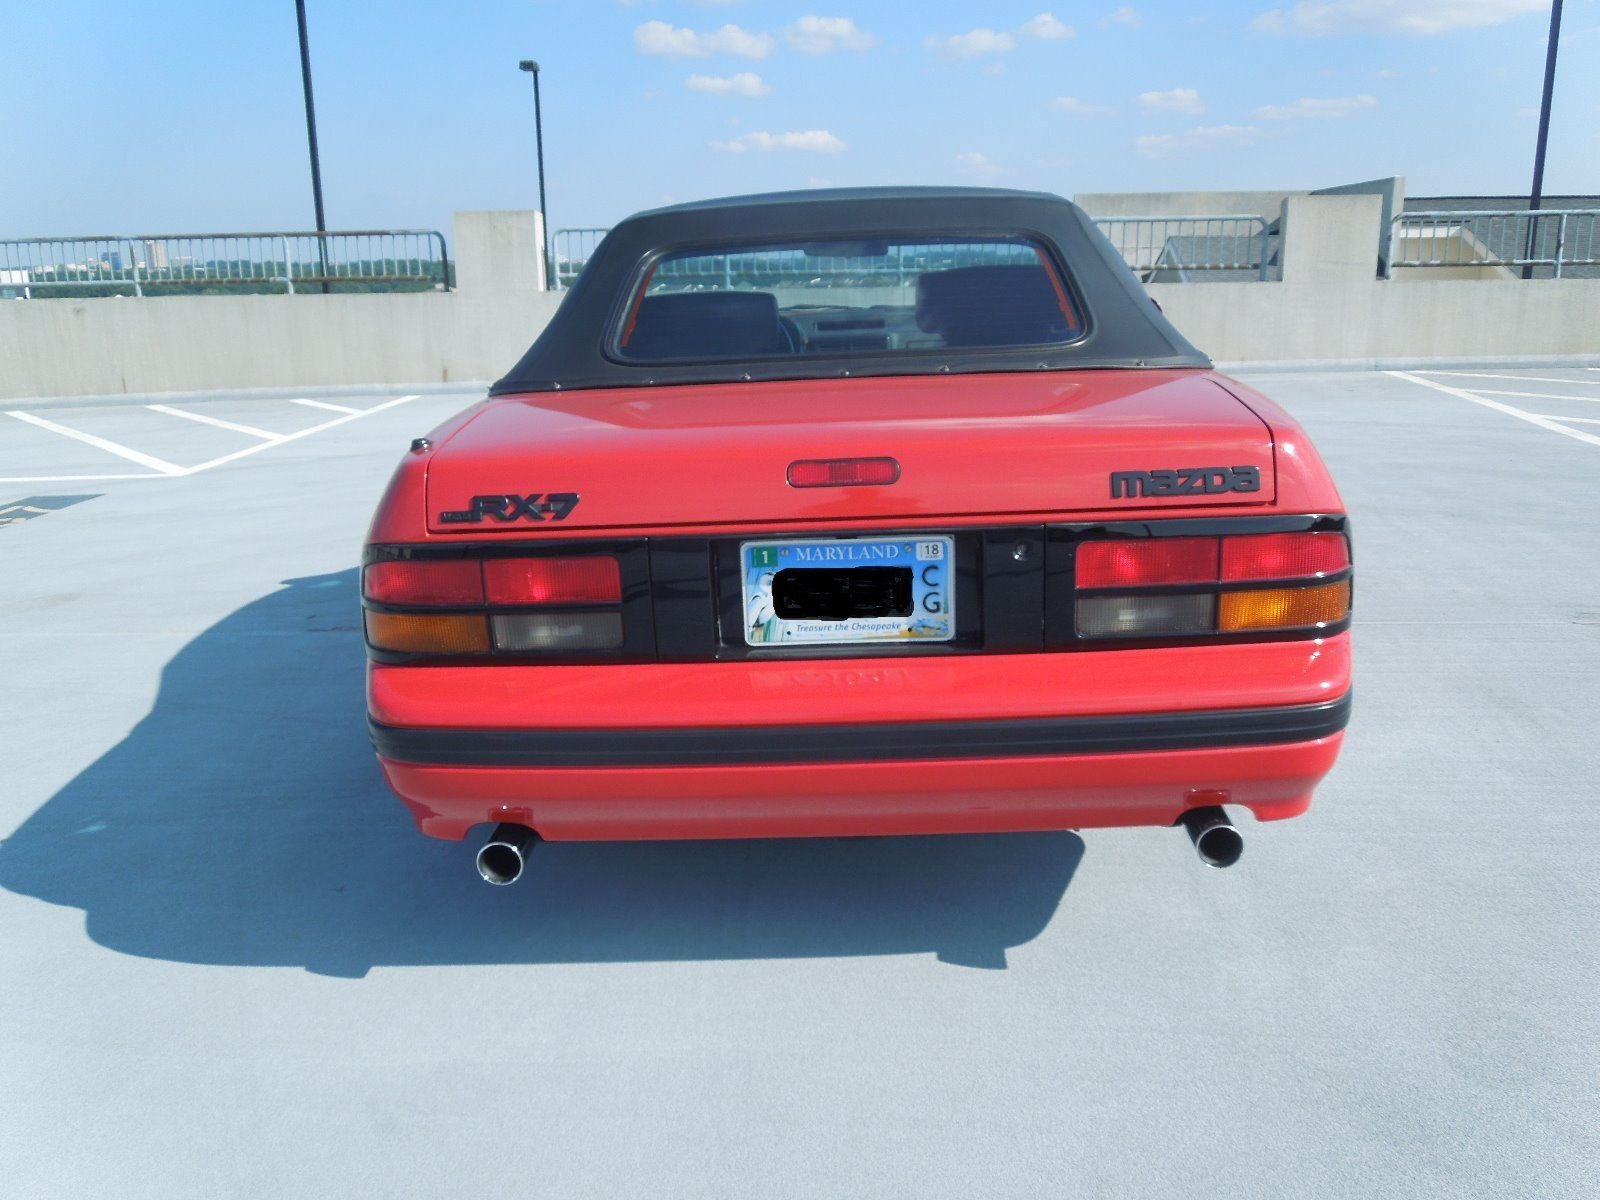 1988 Mazda RX-7 convertible rear